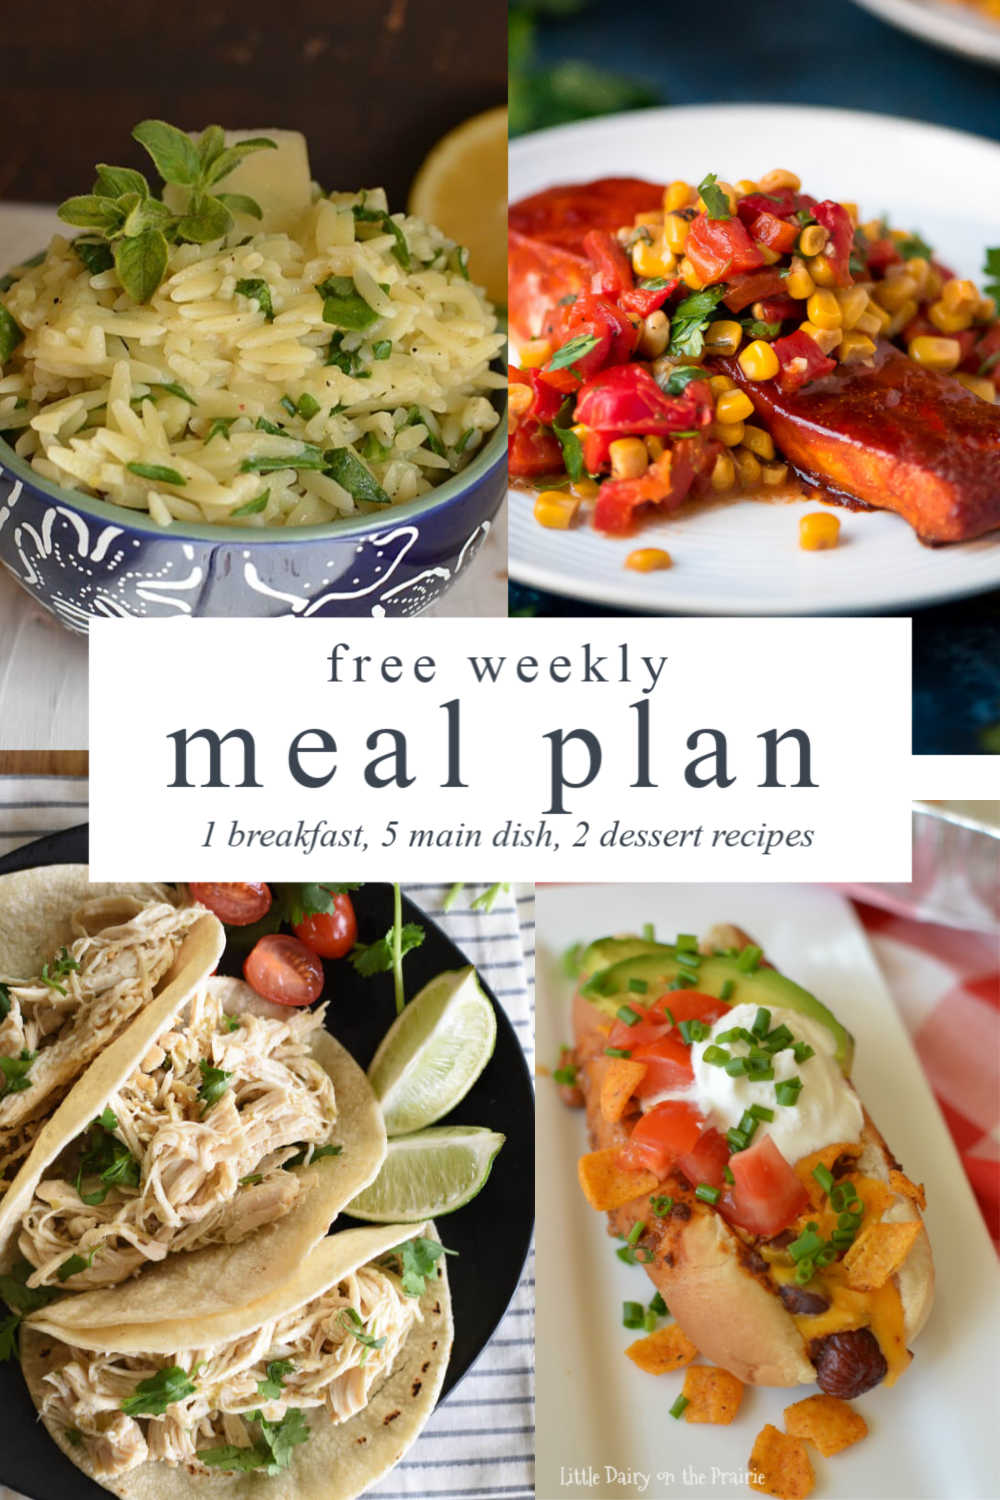 four images- a bowl with spinach orzo, salmon with corn relish, chicken tacos in corn tortilla shells, and a chili dog with sour cream and tomatoes